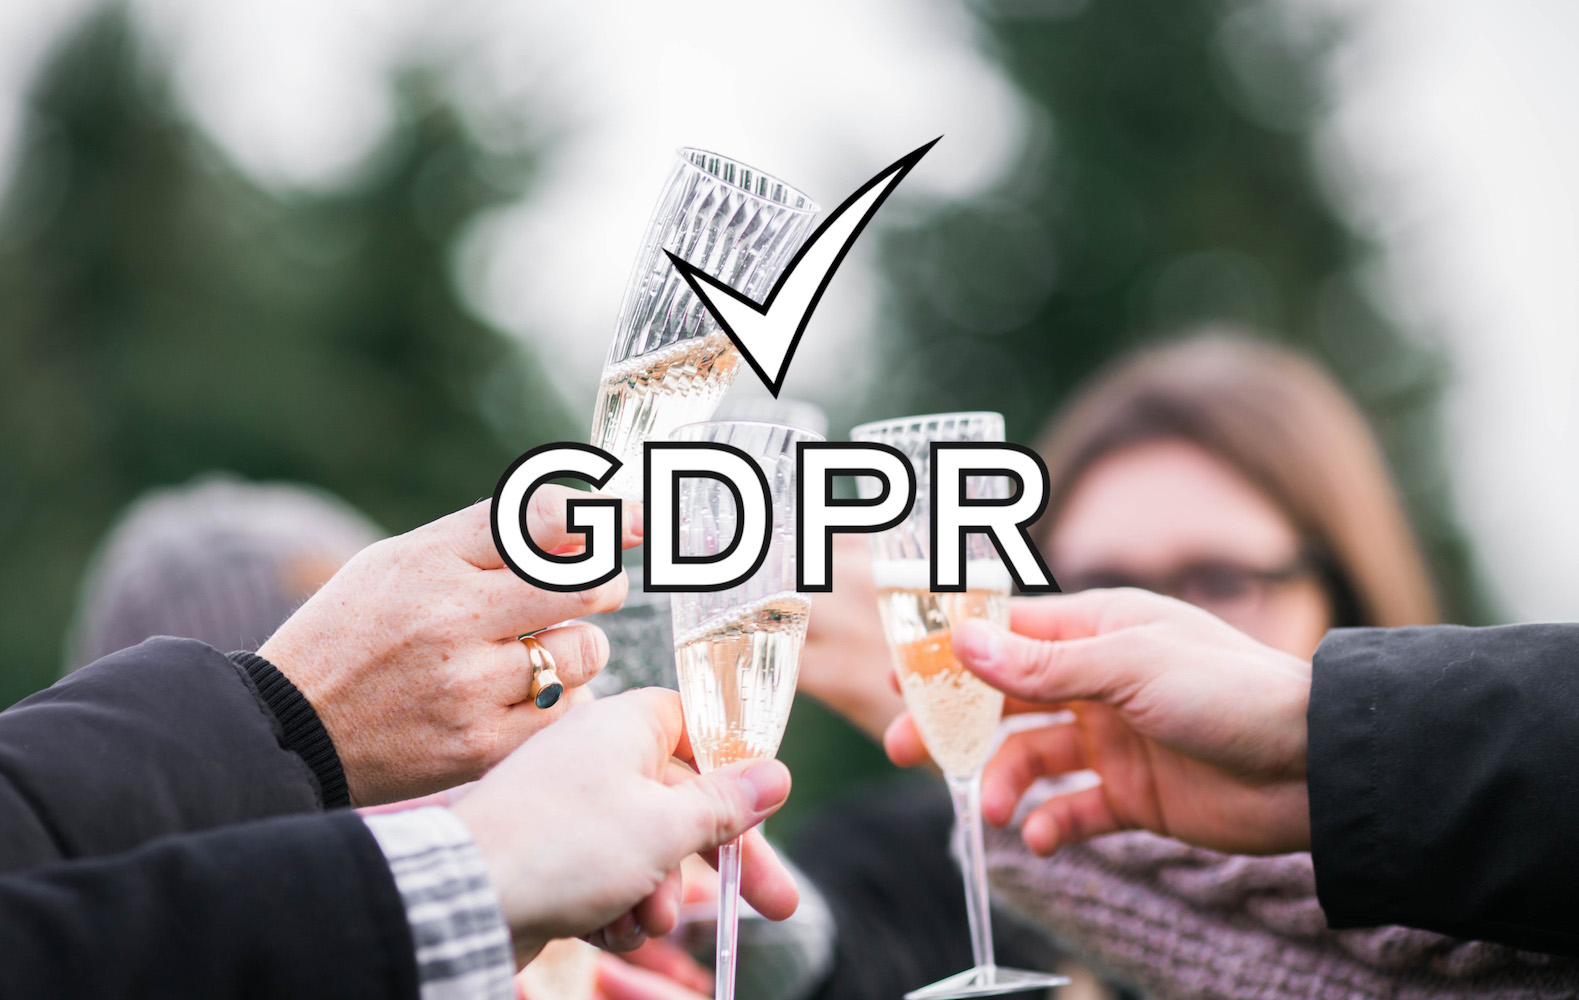 Automate responding to GDPR Data Removal Request emails